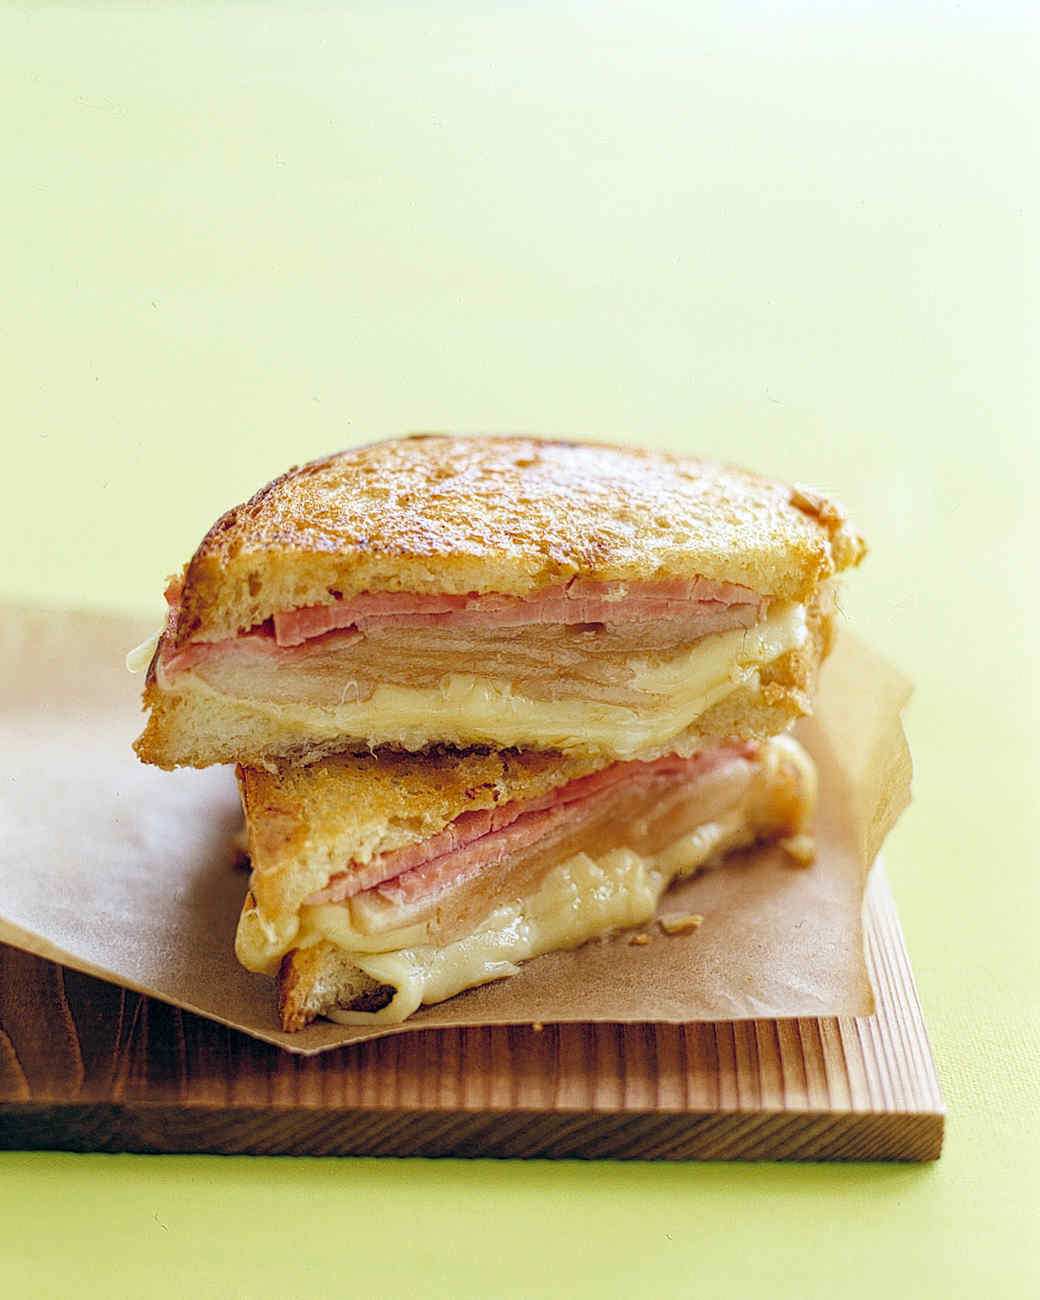 Kids' Favorite Sandwich Recipes.